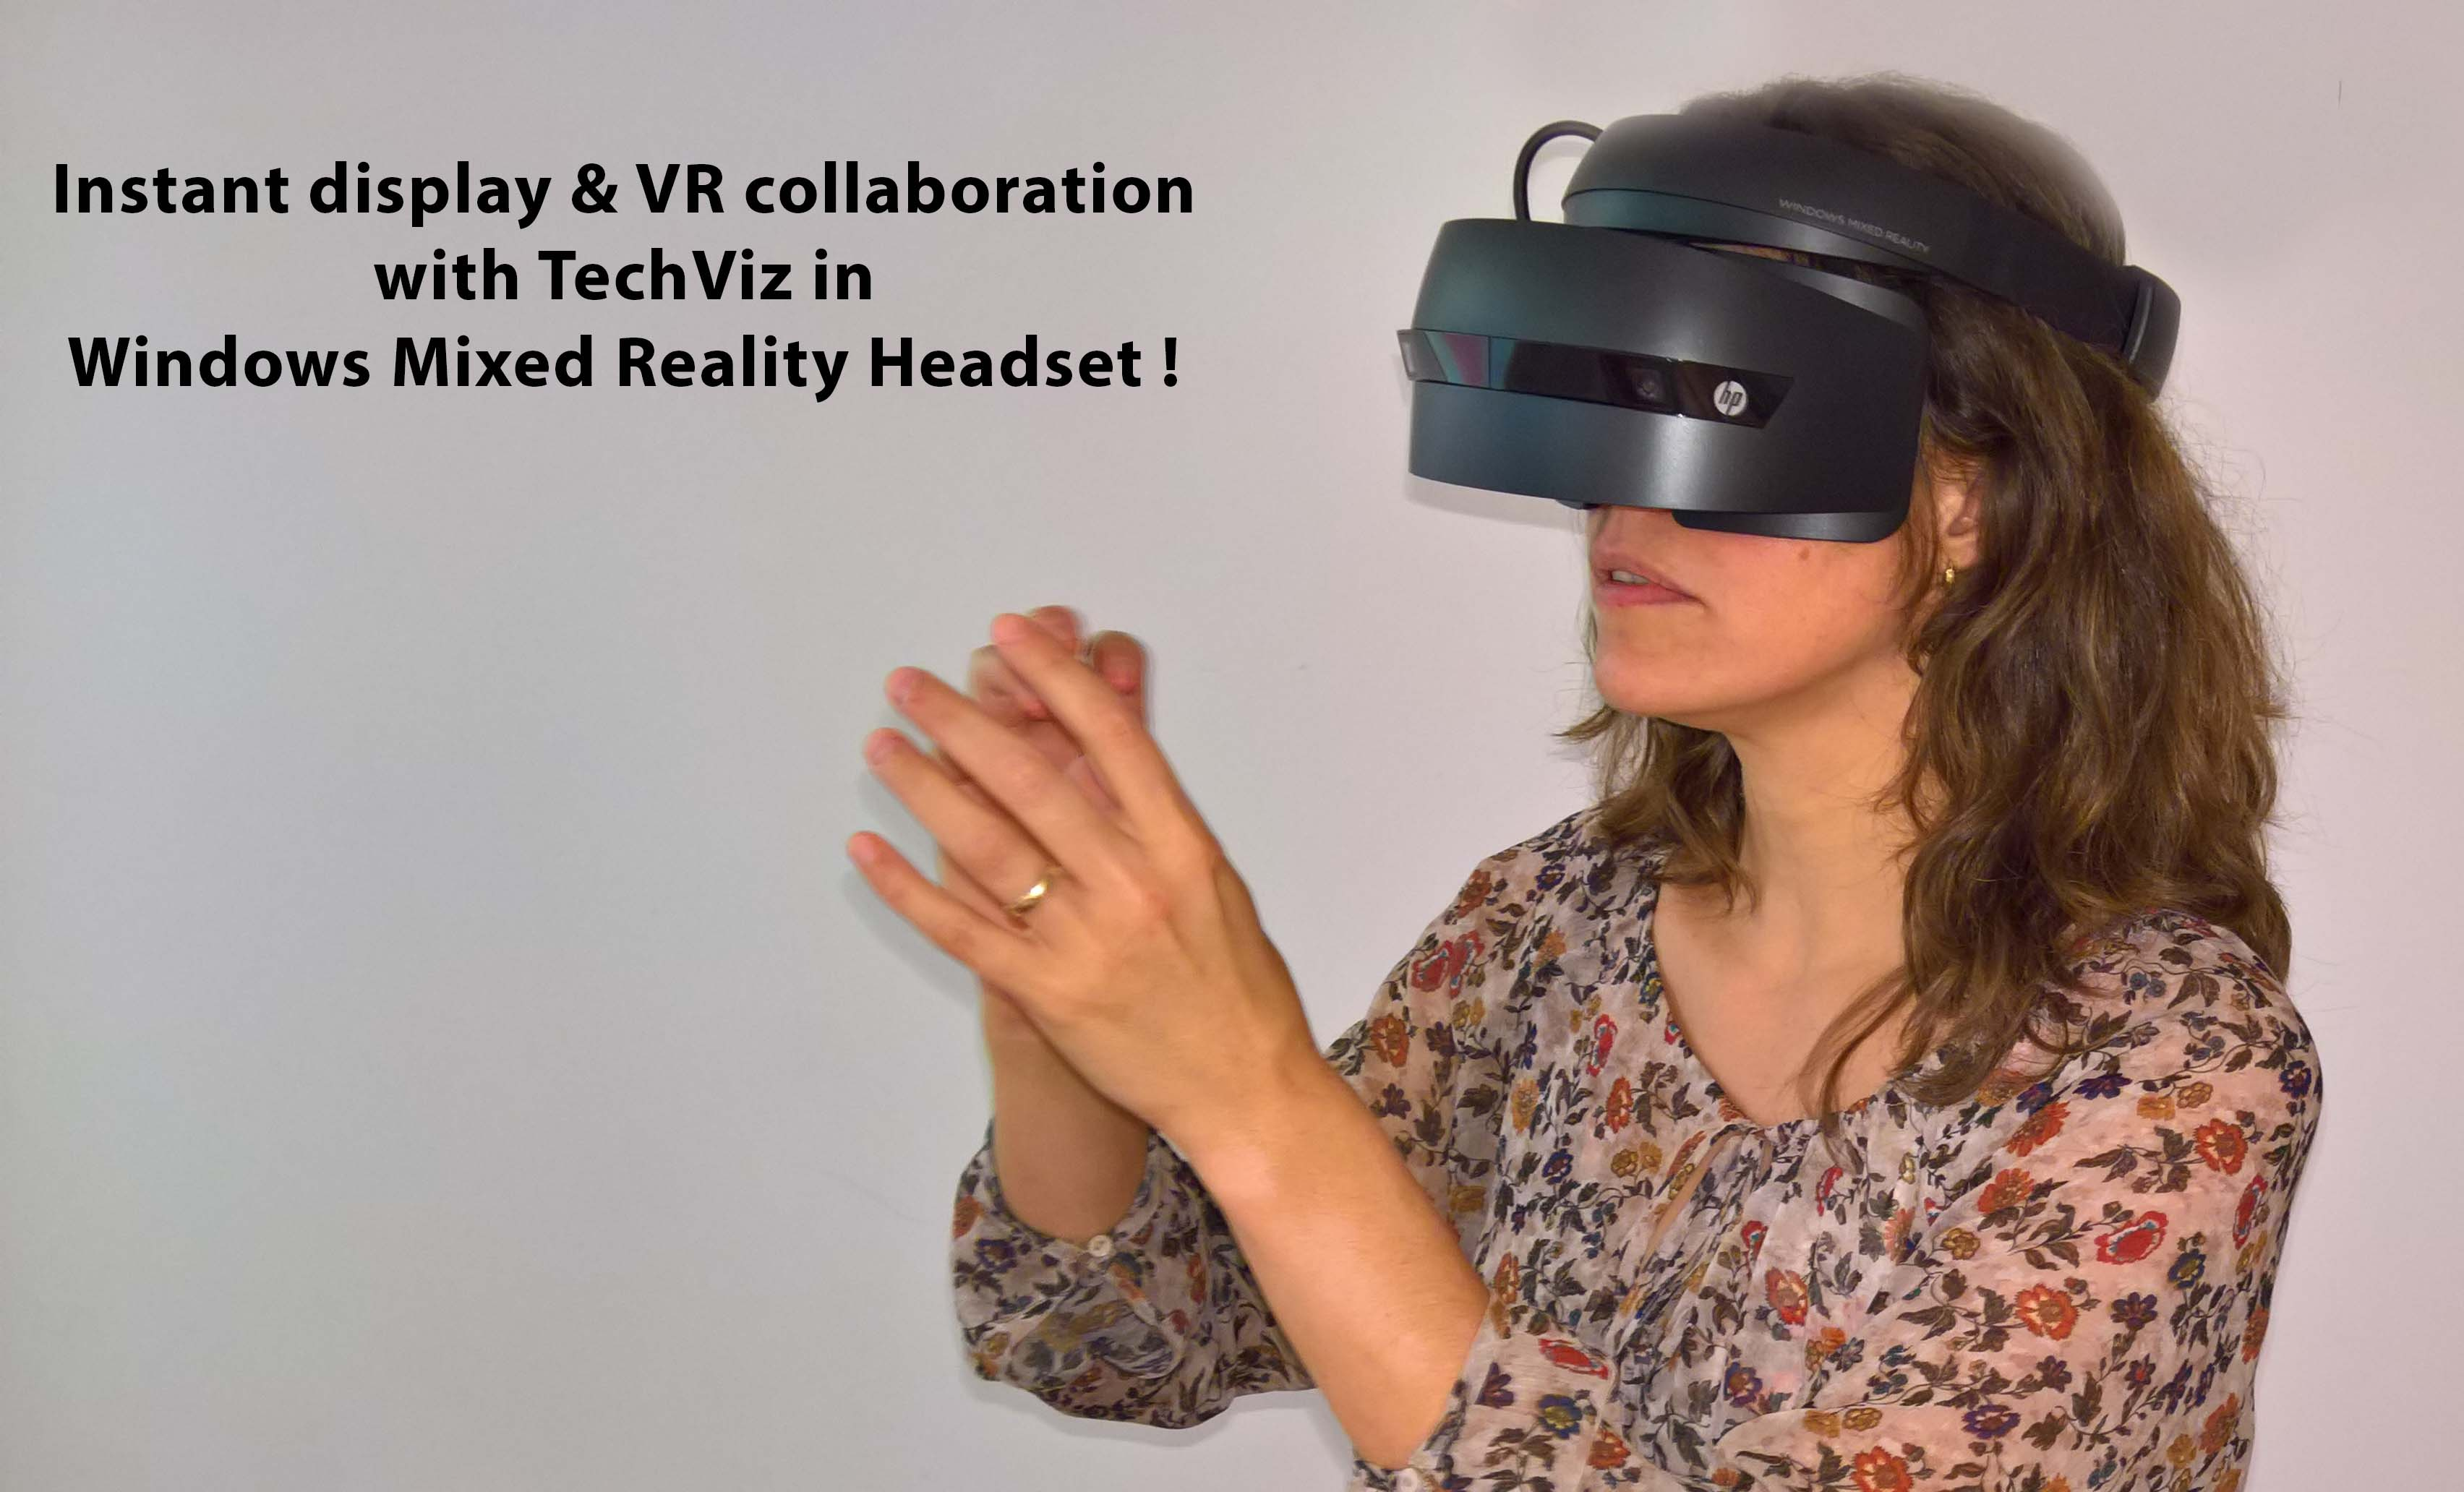 Instant display of TechViz VR collaboration